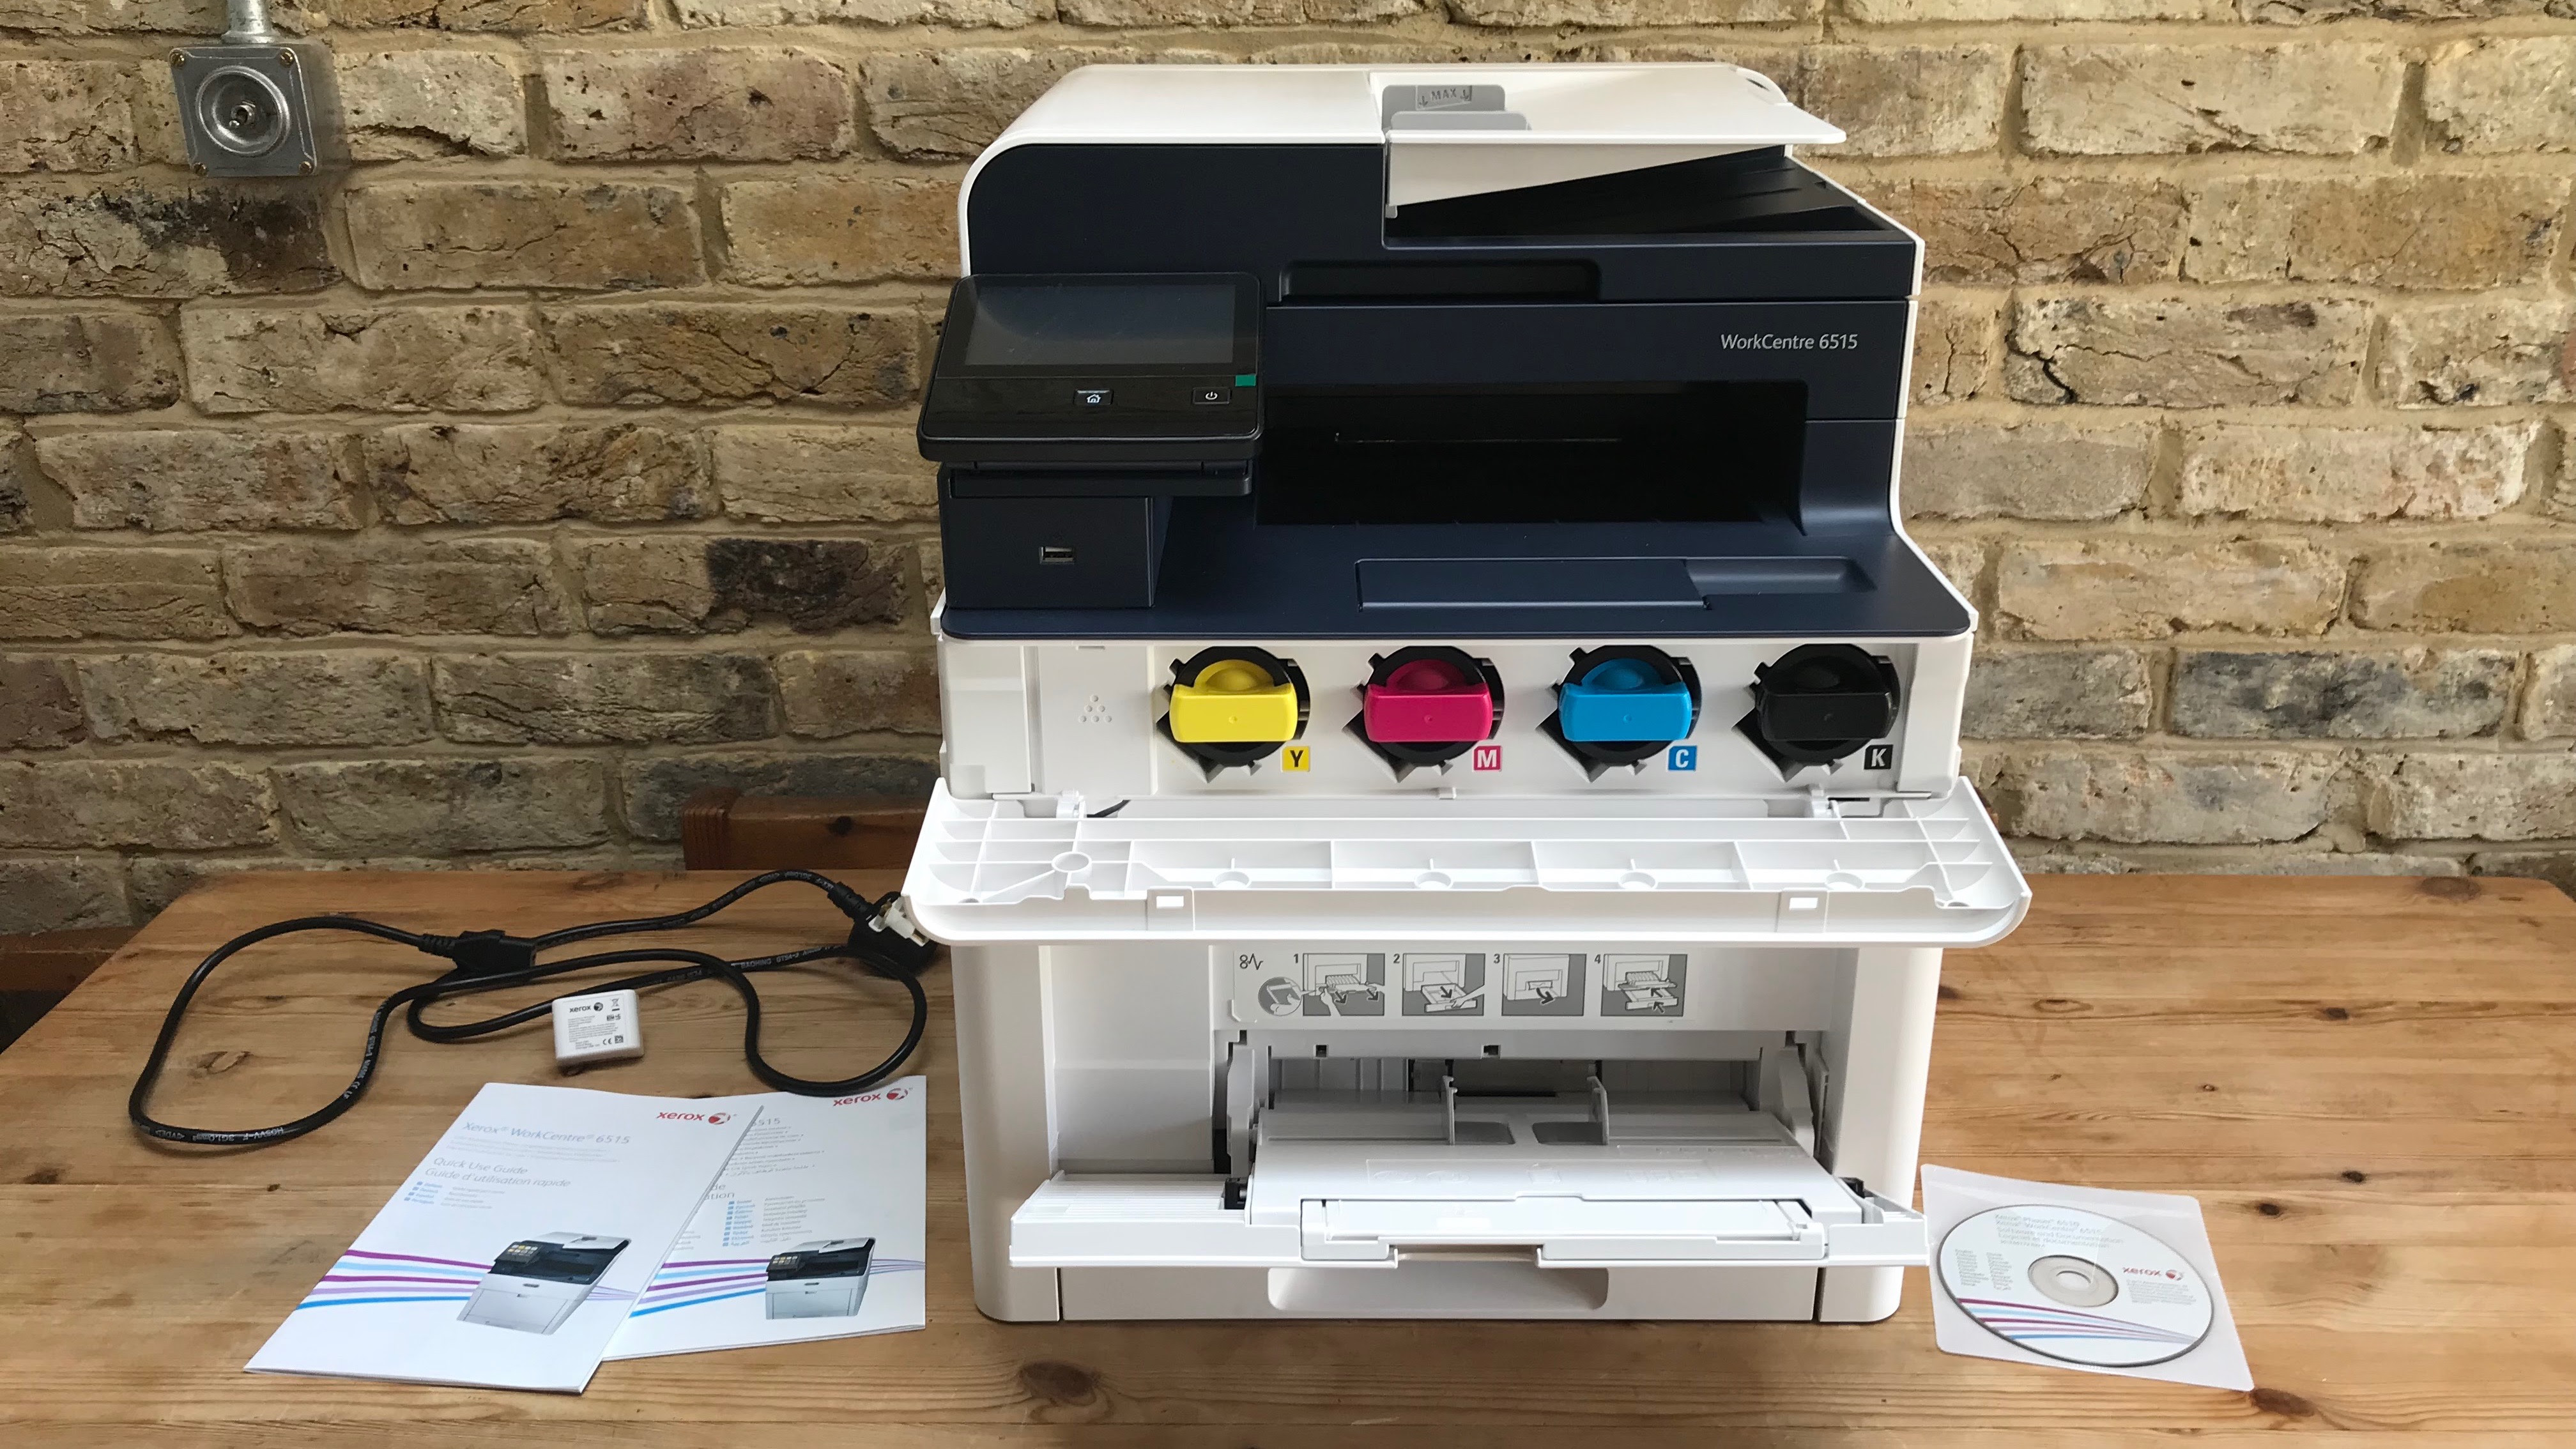 Xerox WorkCentre 6515 - myOurReview